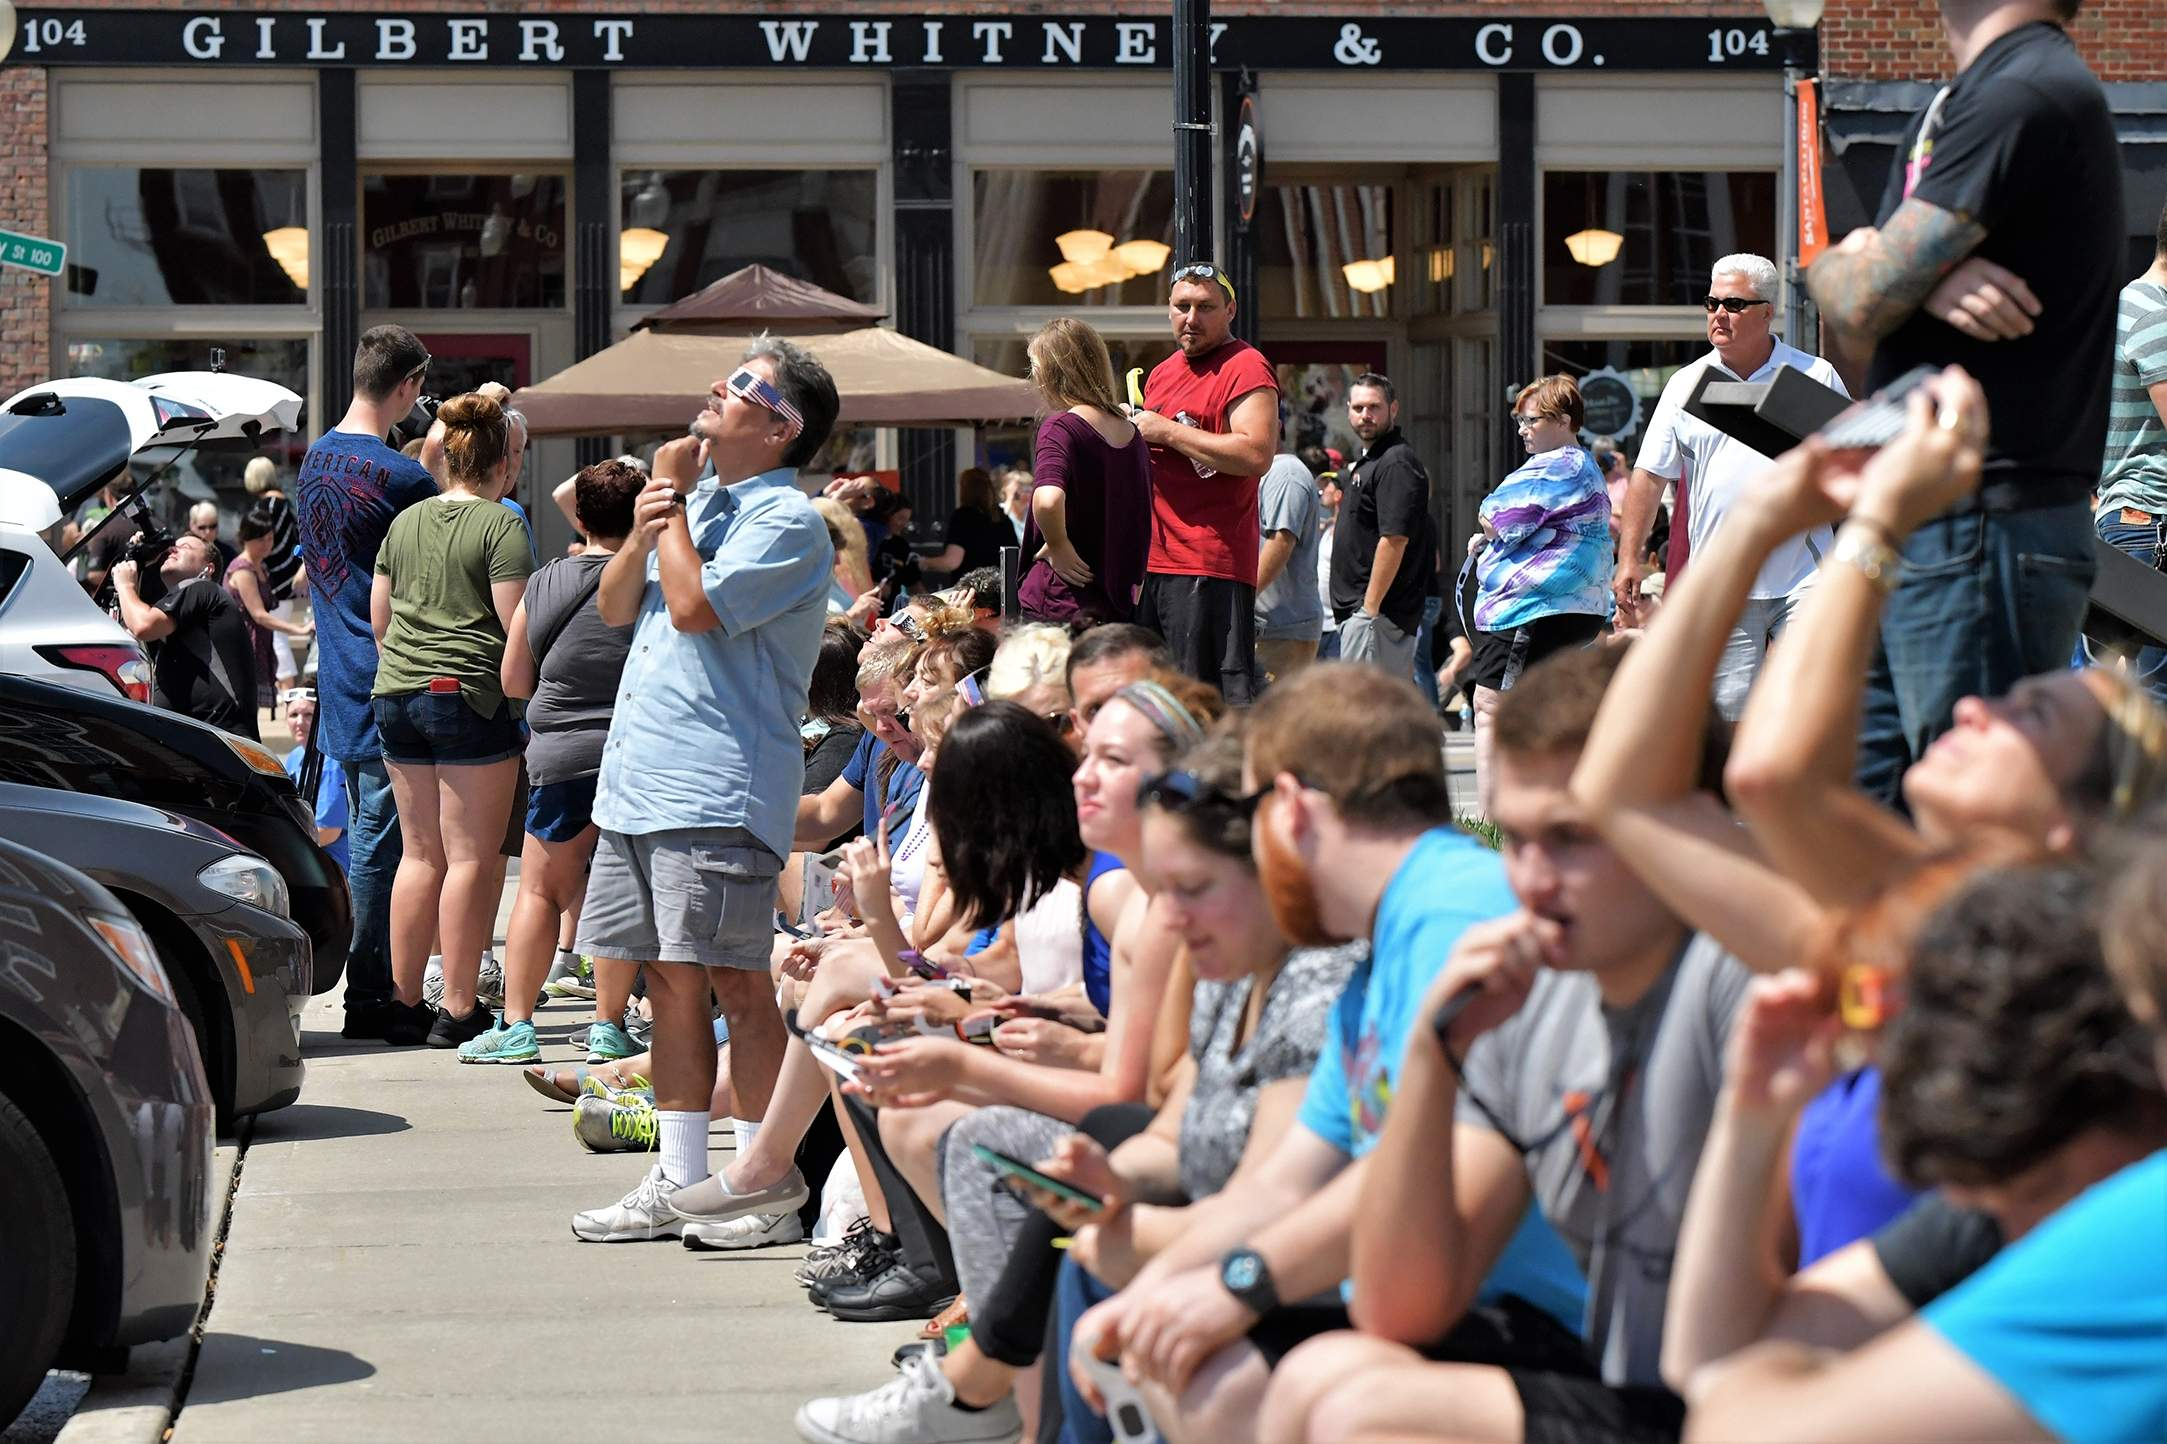 The crowd builds at the Independence Square as the eclipse starts to take form. [David M. Rainey/Special to The Examiner]